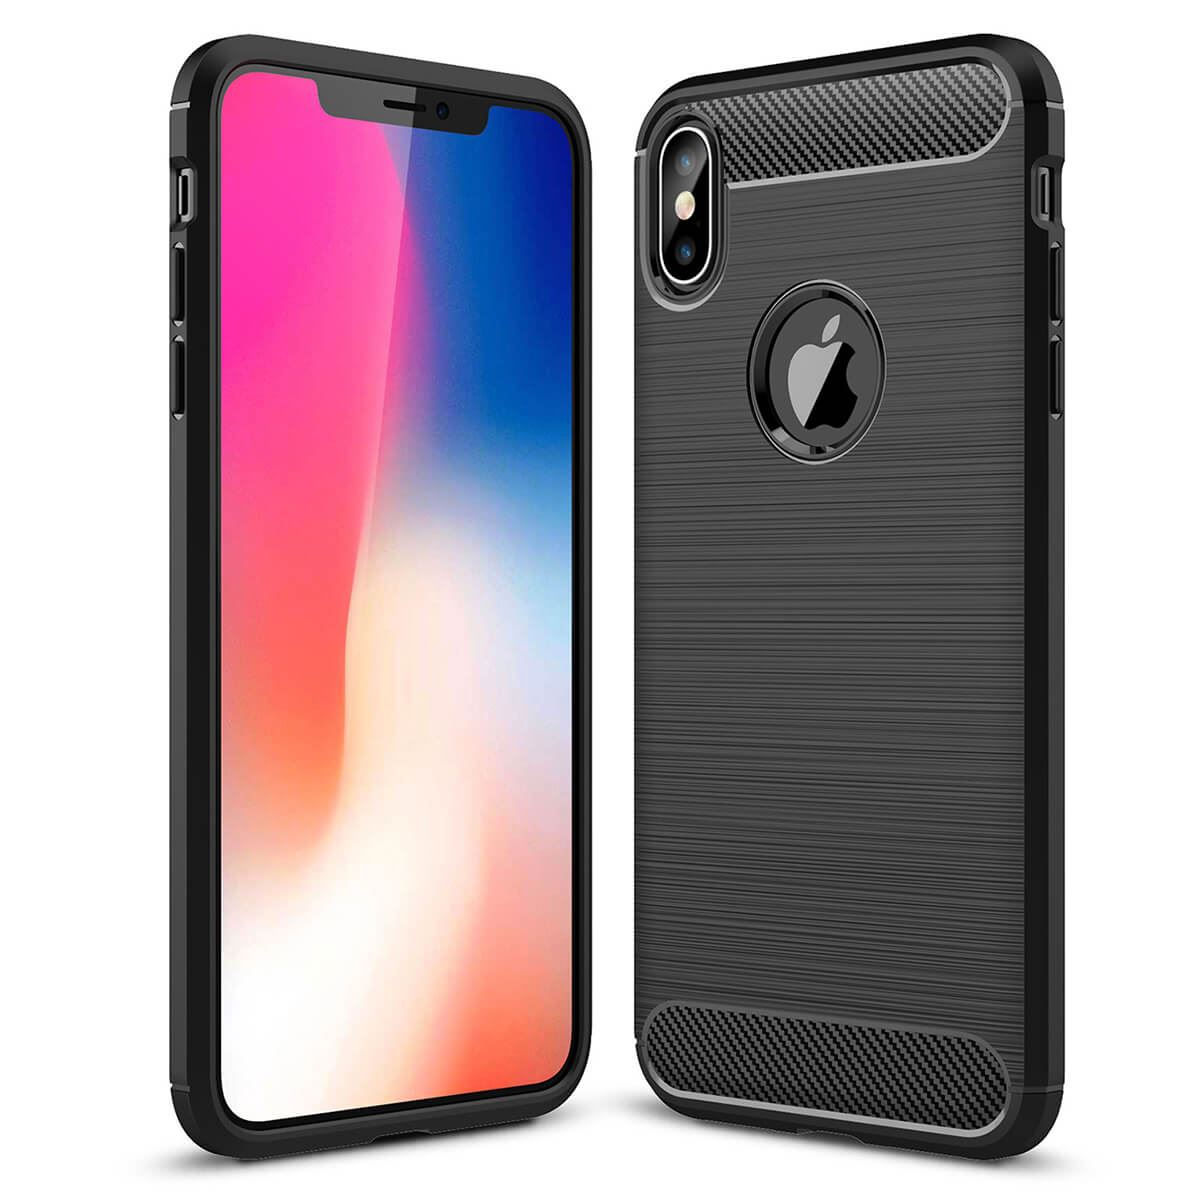 Shockproof-Bumper-Case-Apple-iPhone-10-X-8-7-6s-Se-5s-5-Luxury-Ultra-Slim-Cover thumbnail 4